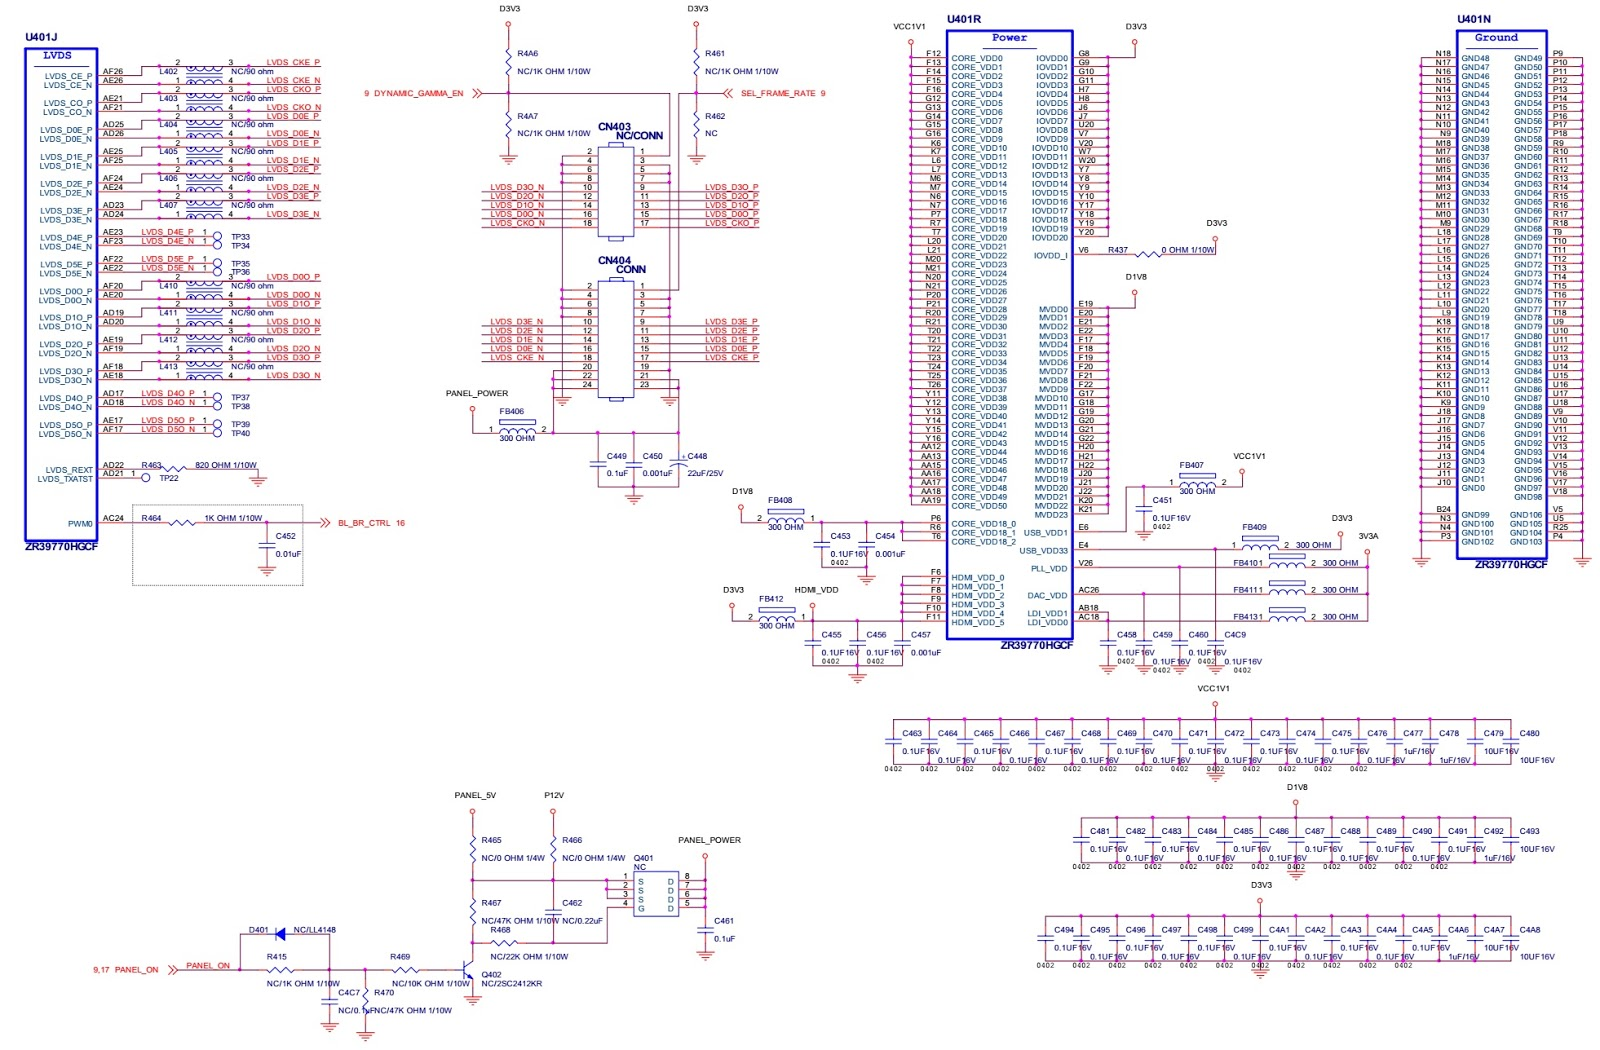 small resolution of manguonblog insignia ns lcd32 09 32 u2033lcd tv power smps and lvds lcd tv schematic diagram 32 inch insignia tv schematic circuit diagram